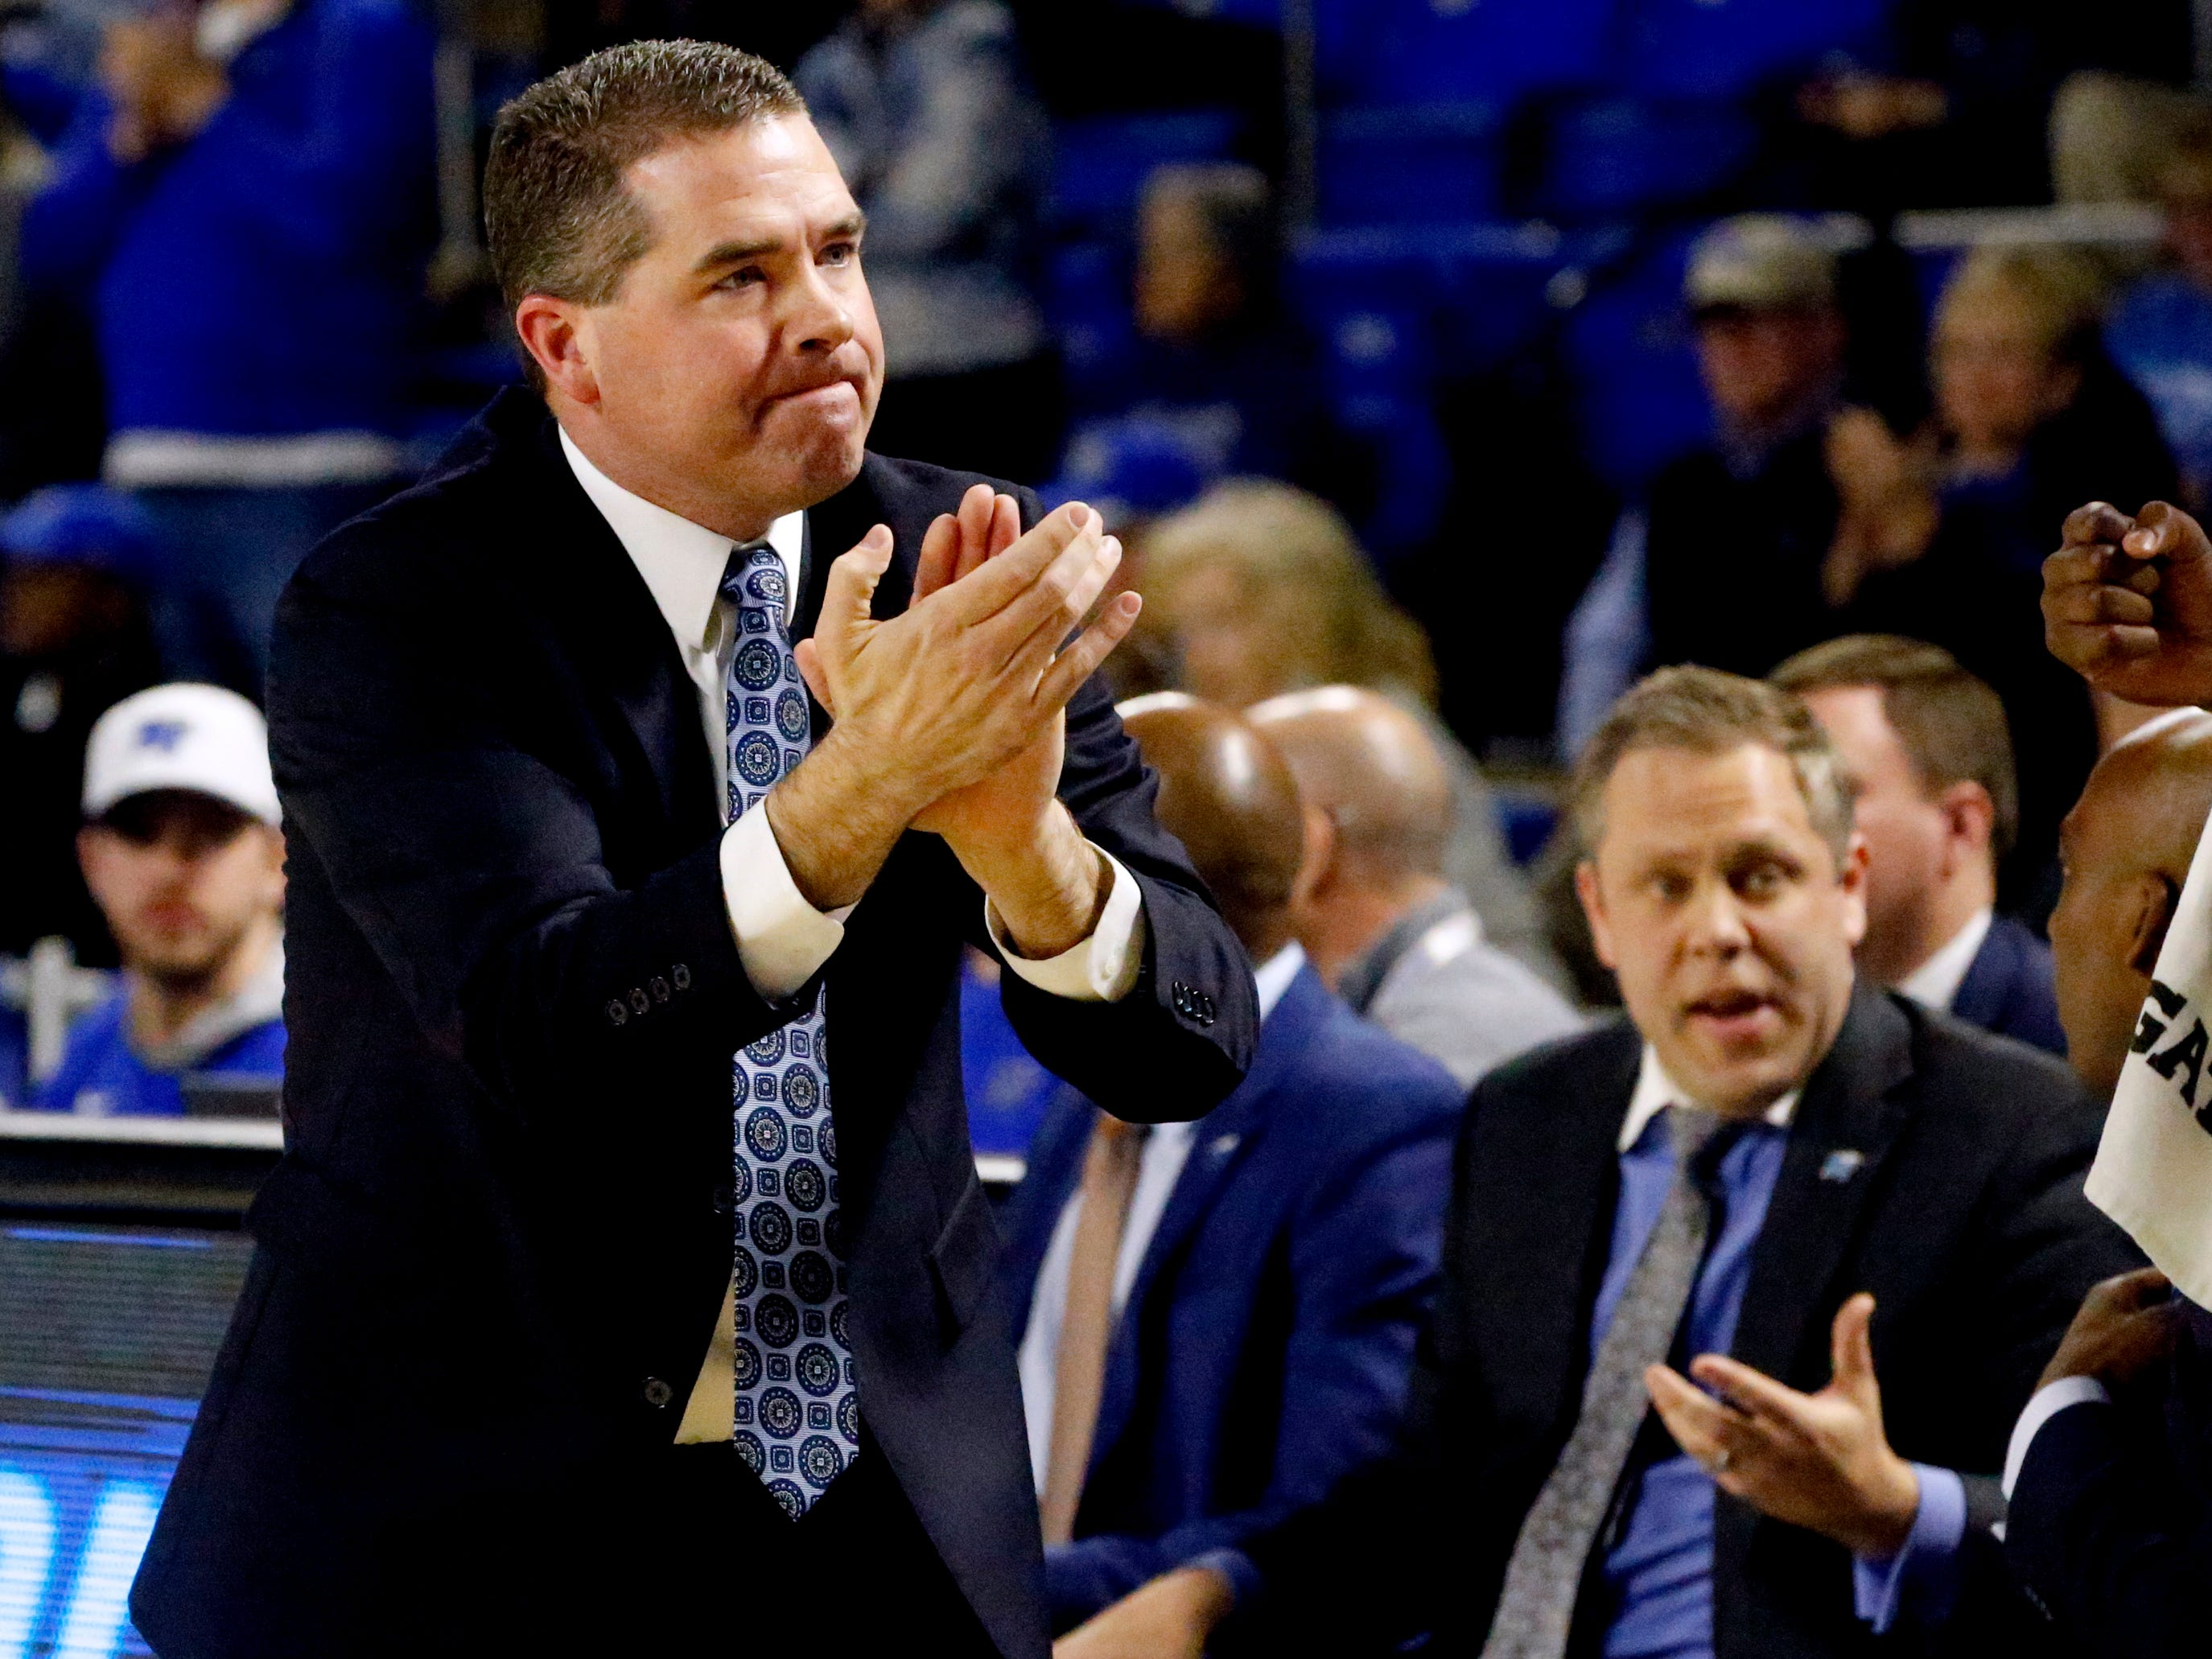 MTSU head coach Nick McDevitt on the sidelines during the game against UAB on Wednesday, Jan. 30, 2019.